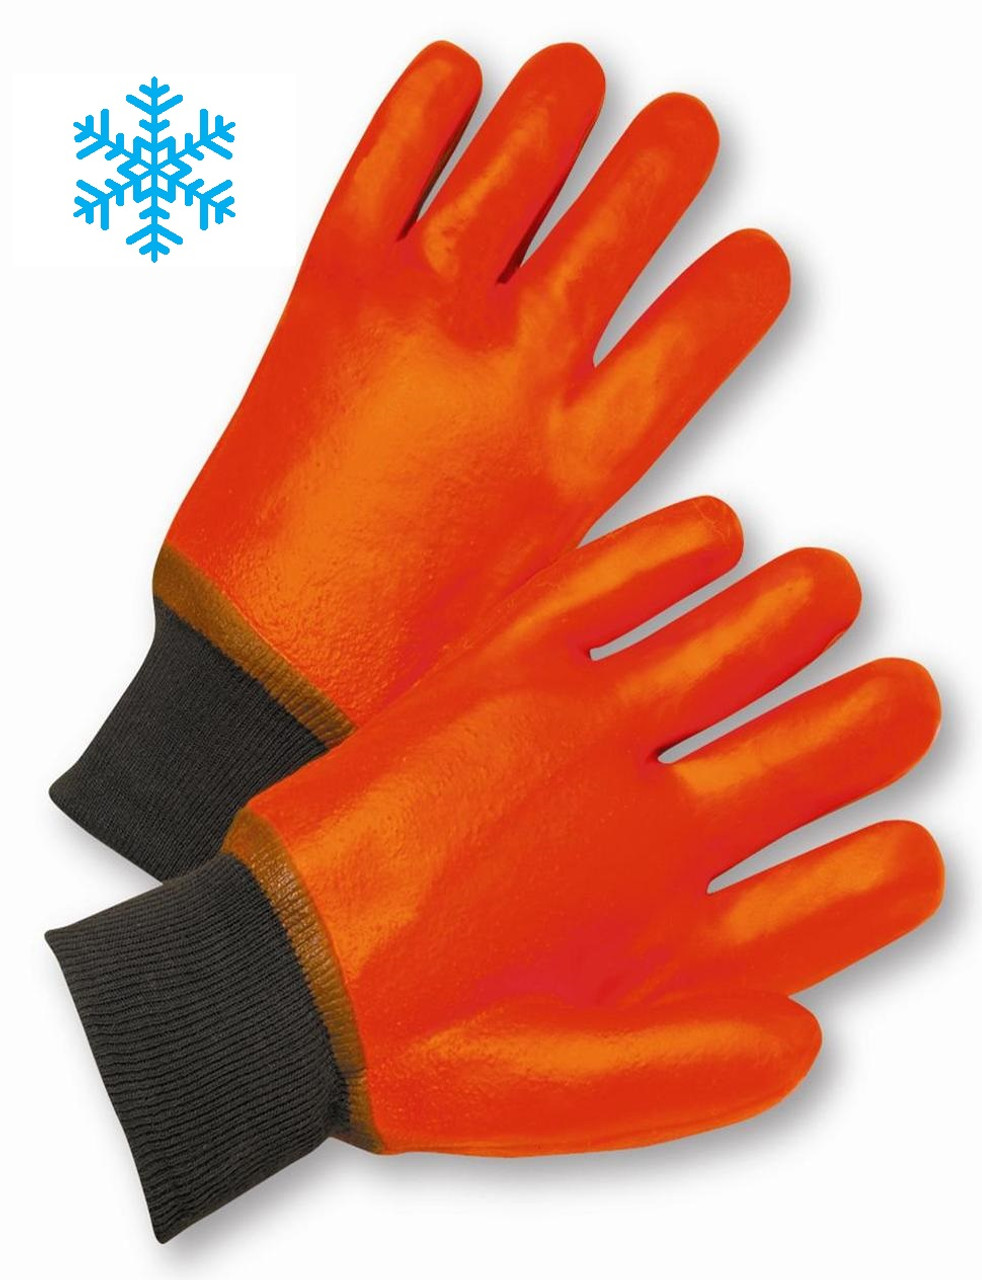 Safety Orange PVC Dipped Knitwrist Gloves - Insulated Gloves   ## 235 ##